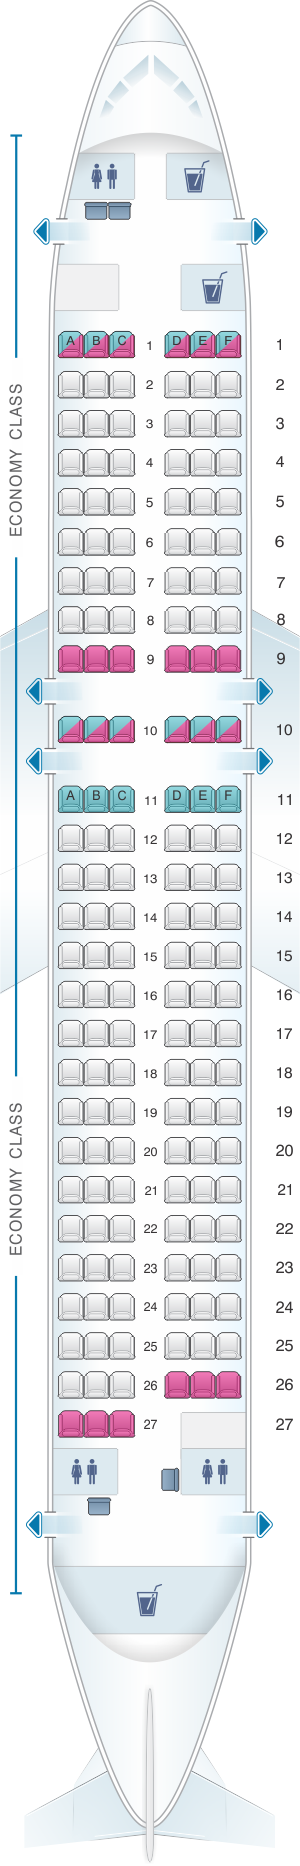 Seat map for Finnair Airbus A320